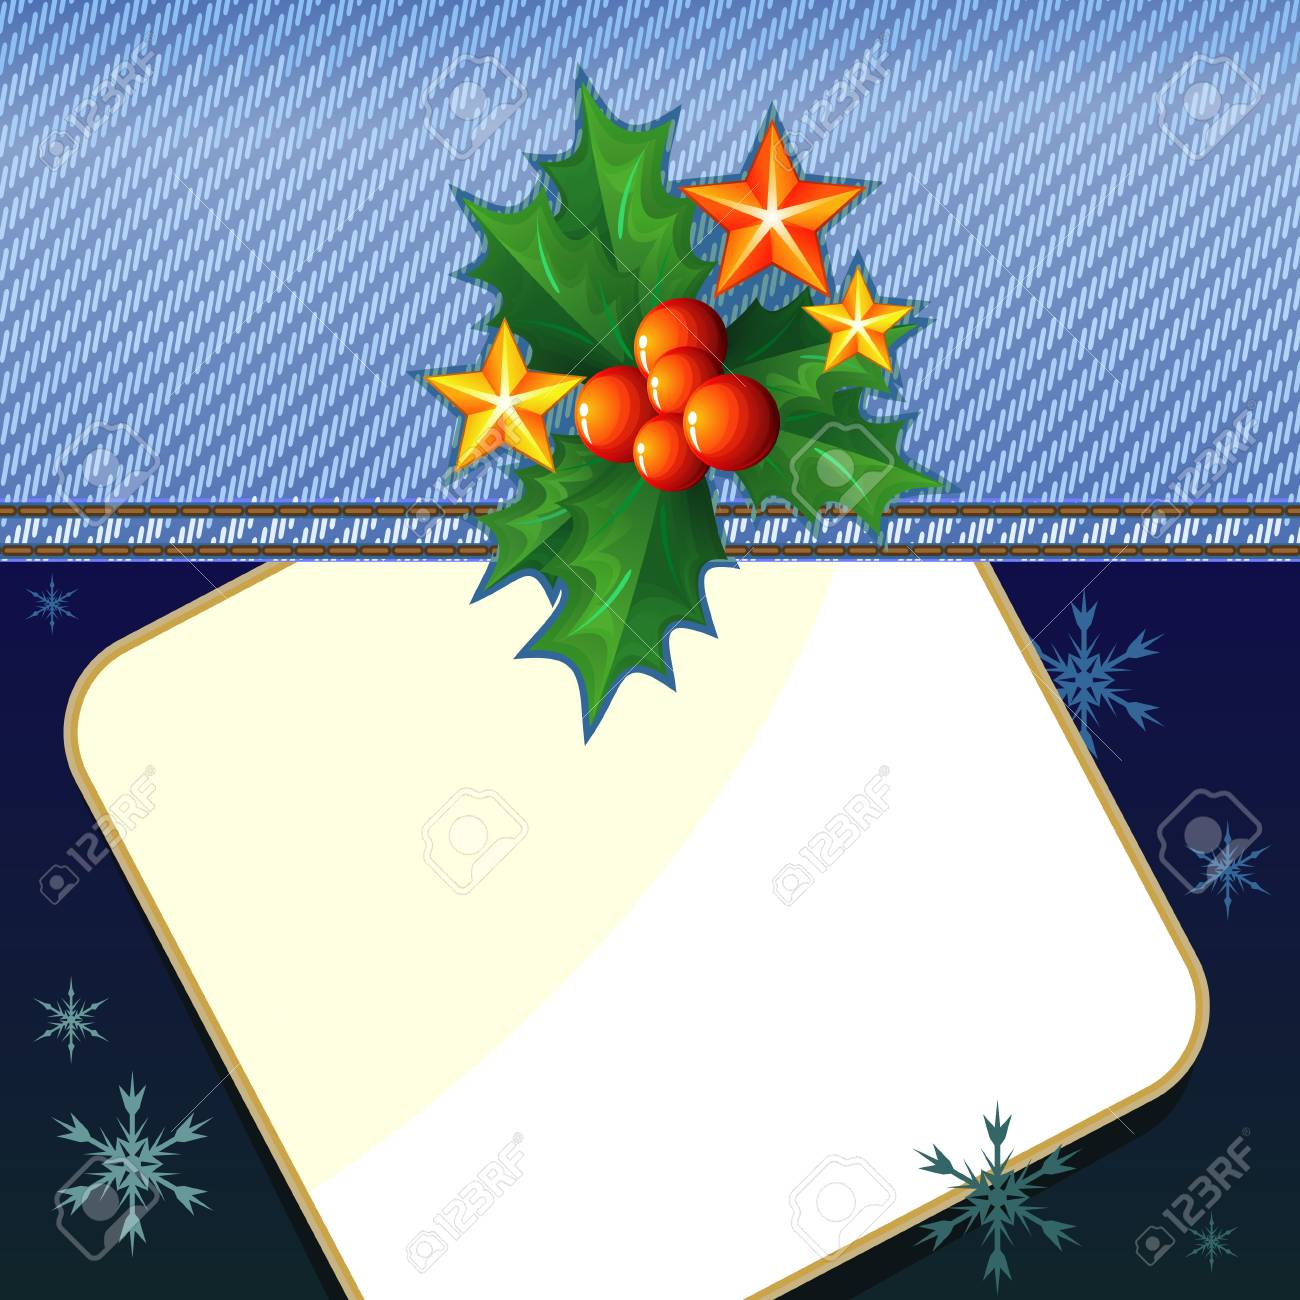 Christmas card design with denim cloth and holly Stock Vector - 11651251